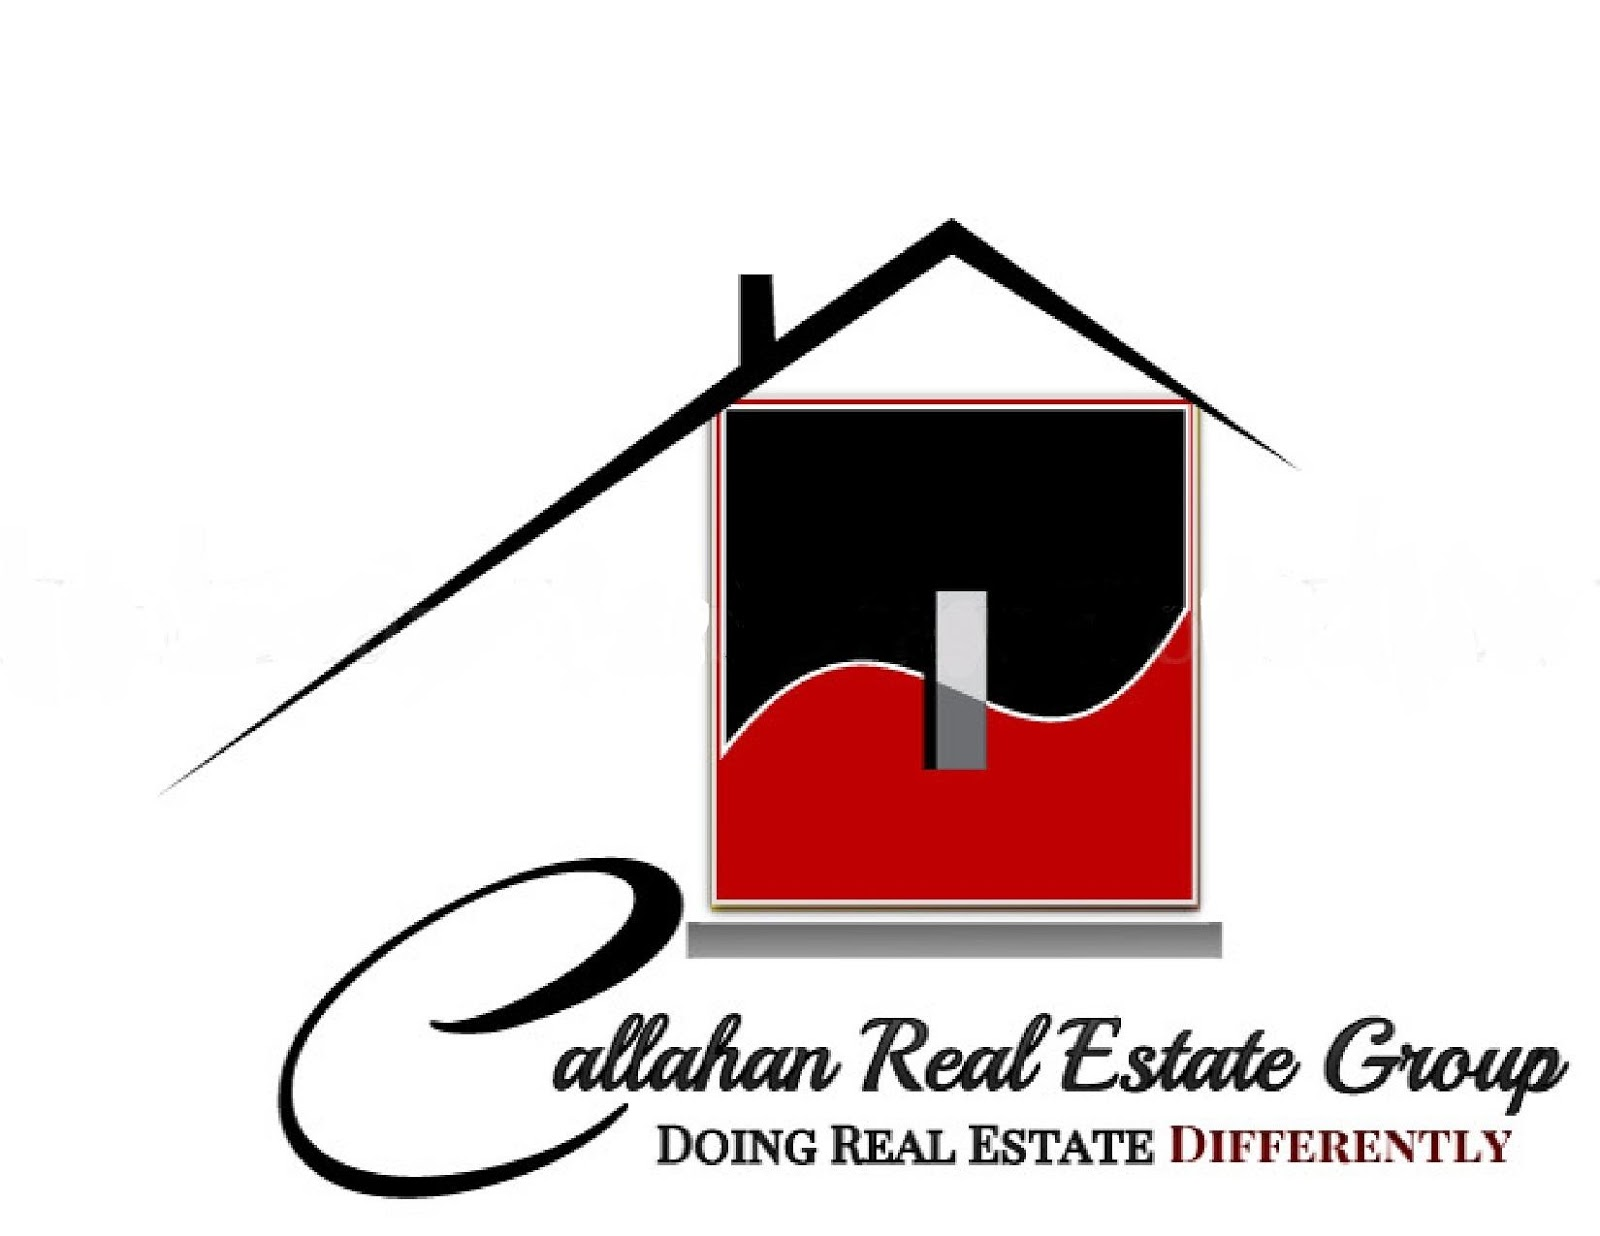 Callahan Real Estate Group